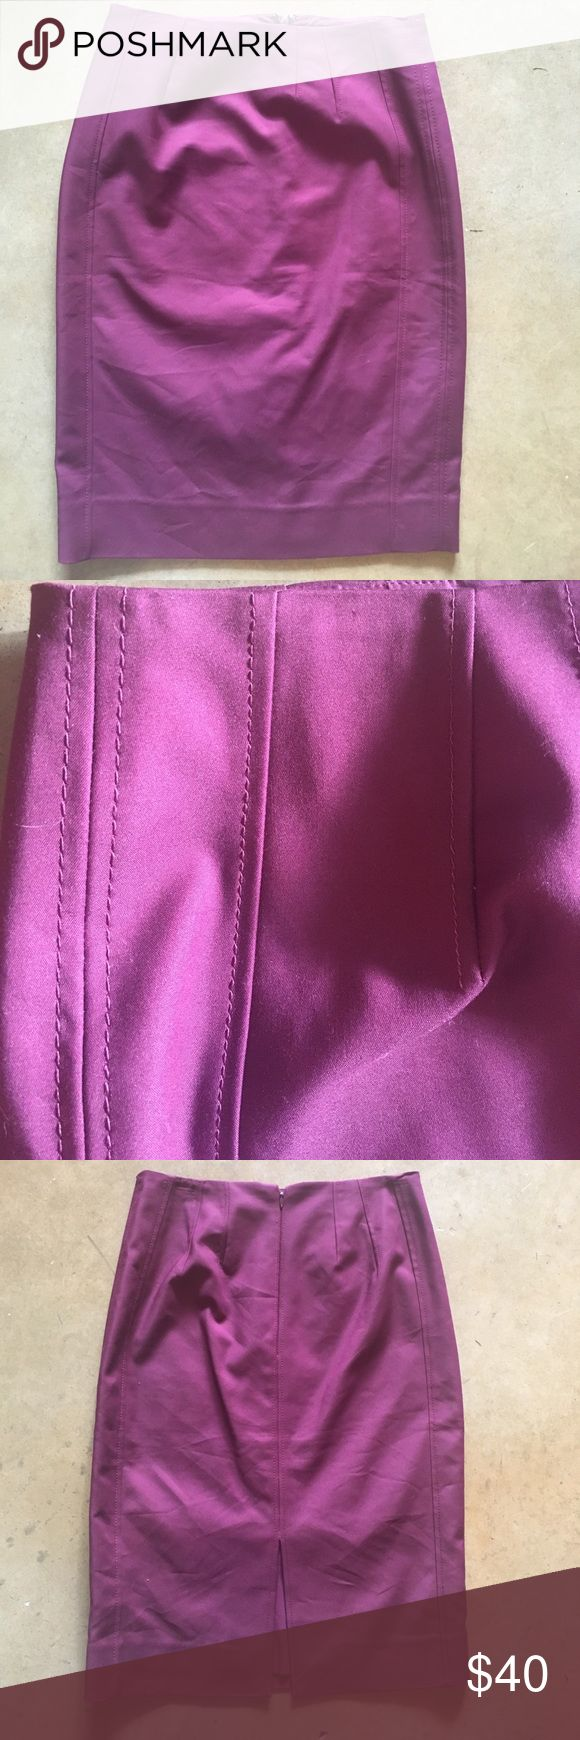 Purple Pencil Skirt WHBM Purple Pencil Skirt from White House Black Market. Such a pretty color! Beautiful stitching detailing. Soft matching liner. Like new! Size 2 White House Black Market Skirts Pencil